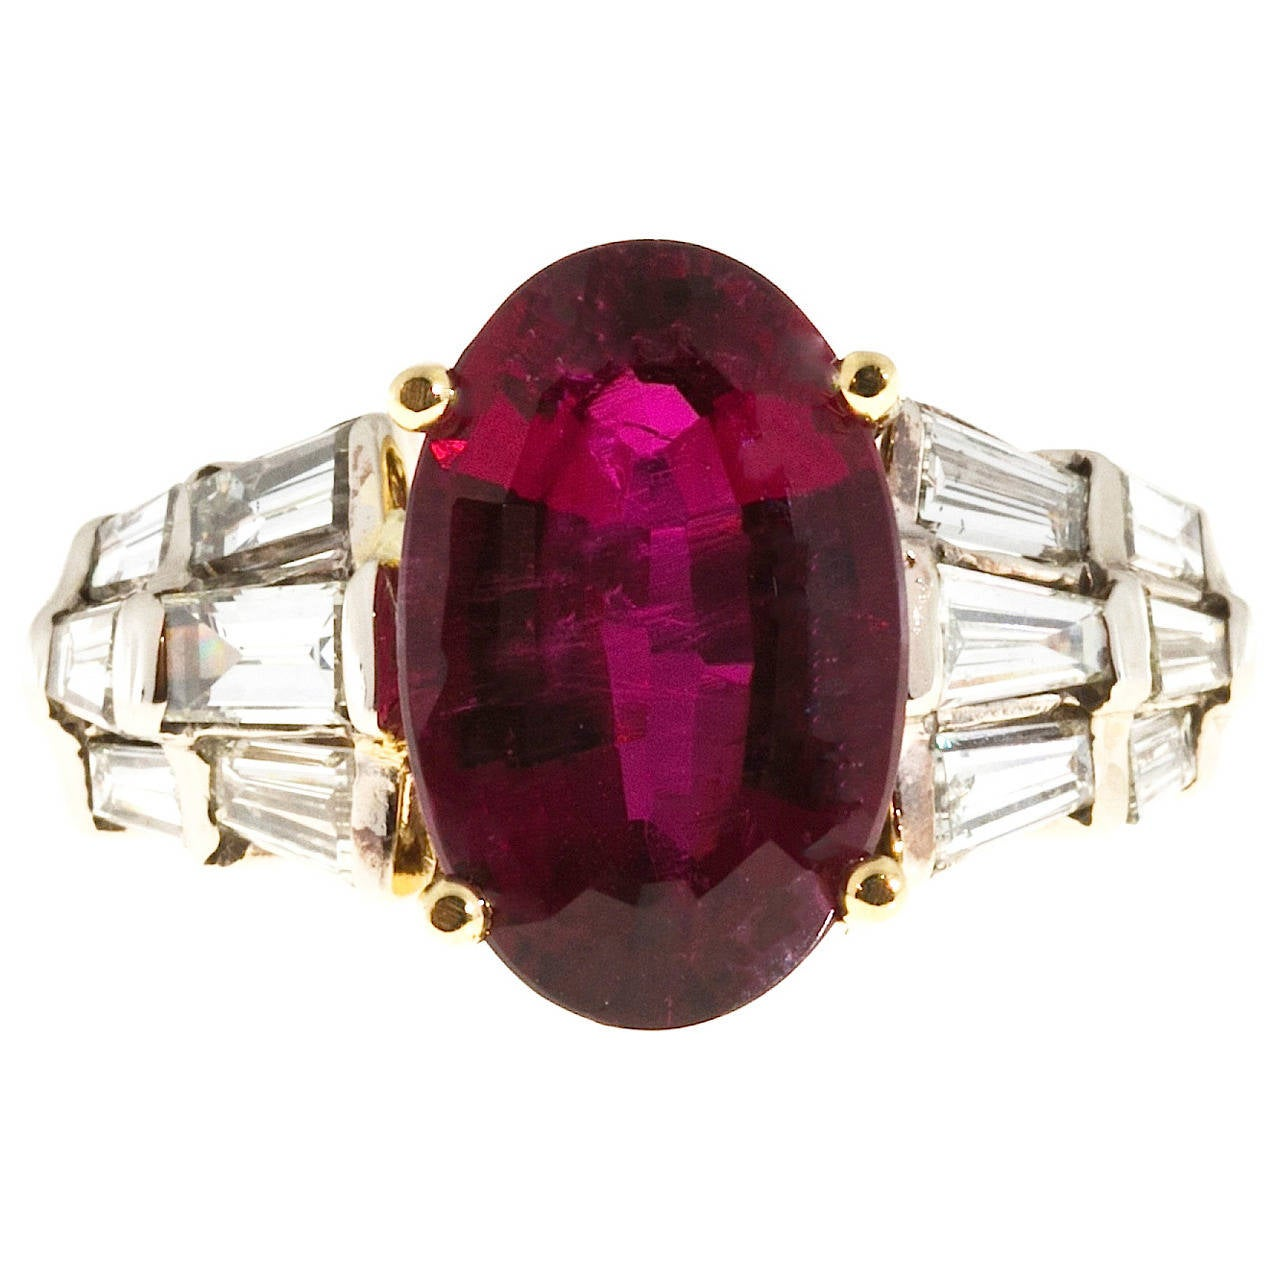 Bright red Rubelite Tourmaline and diamond cocktail engagement ring. Original 1950s 18k and 14k yellow and white gold setting with straight and tapered bright white baguette diamond sides. GIA certified natural Rubelite Tourmaline center stone with